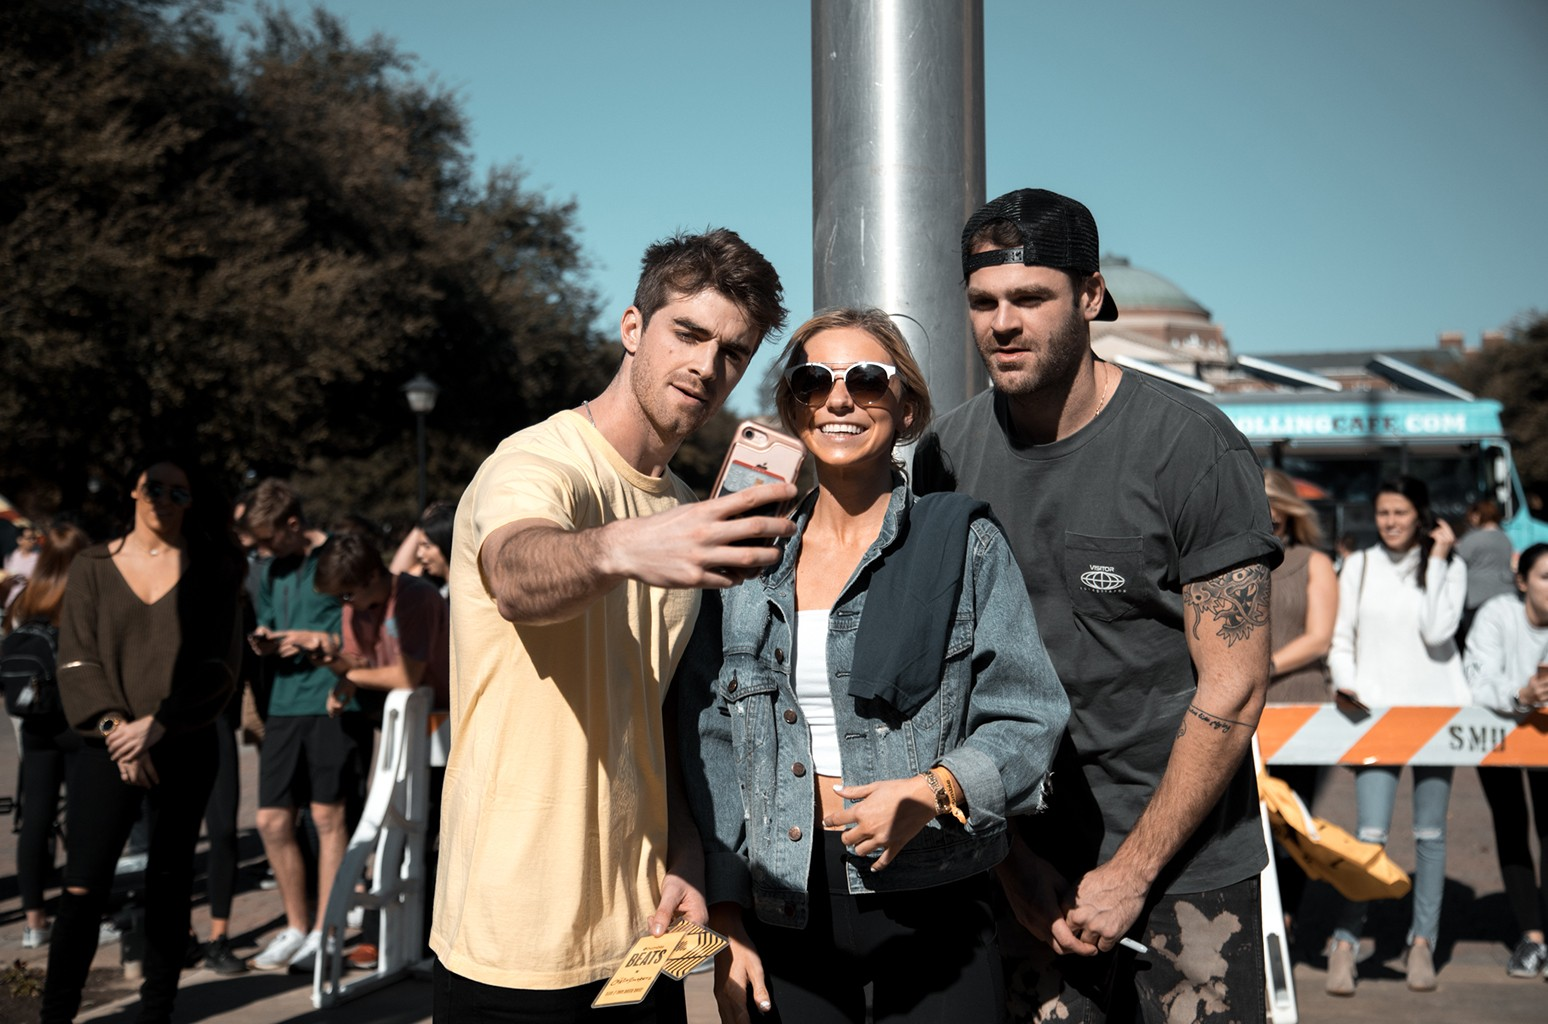 The Chainsmokers Bumble